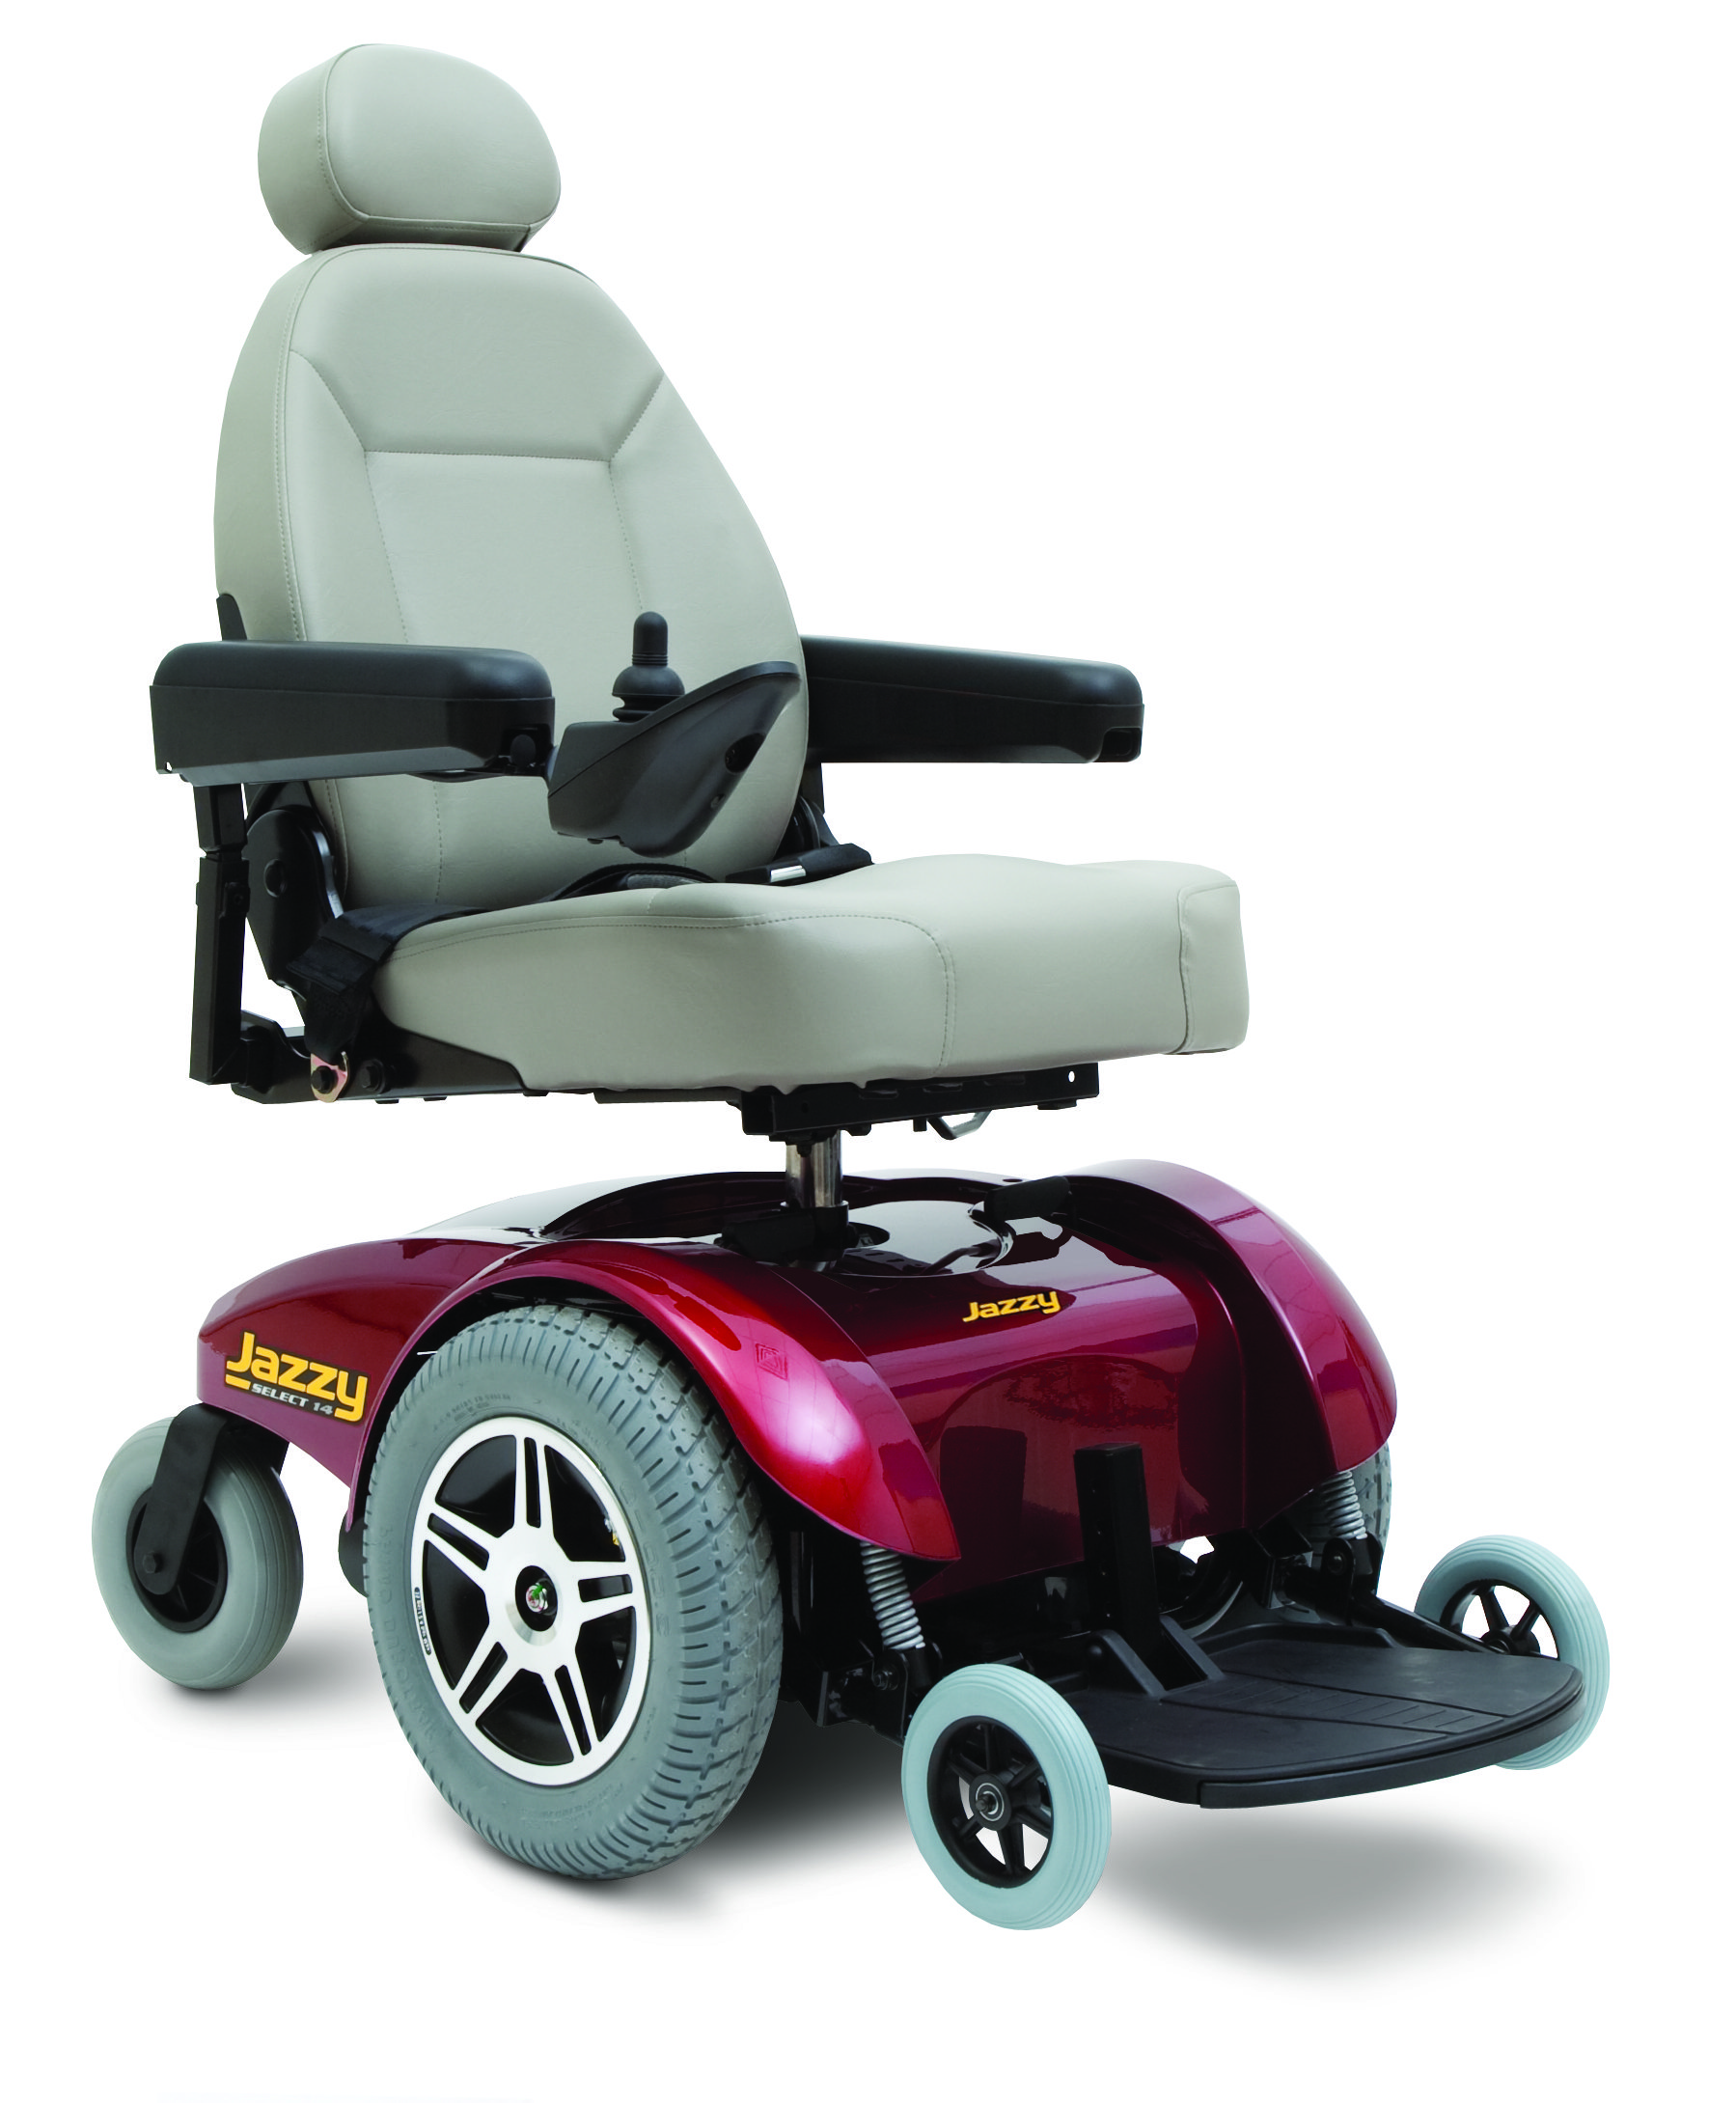 Horizon Home Services Pensacola FL Scooters & Power Chairs